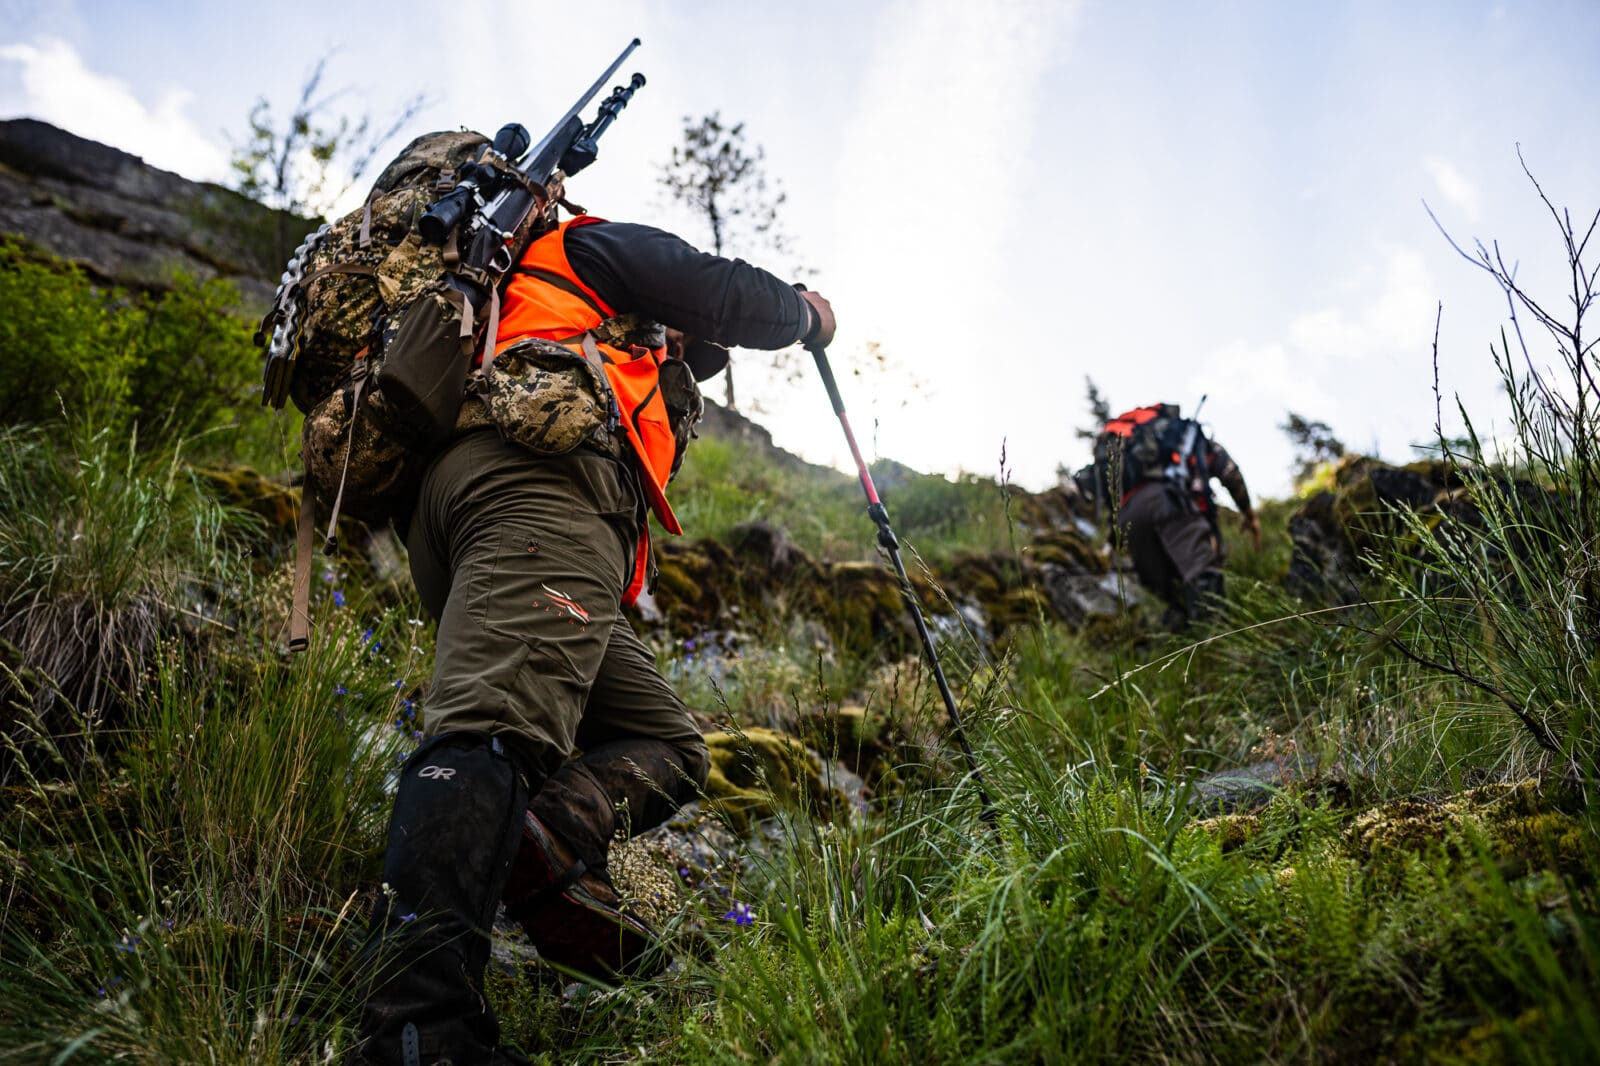 Hunters navigating in the backcountry